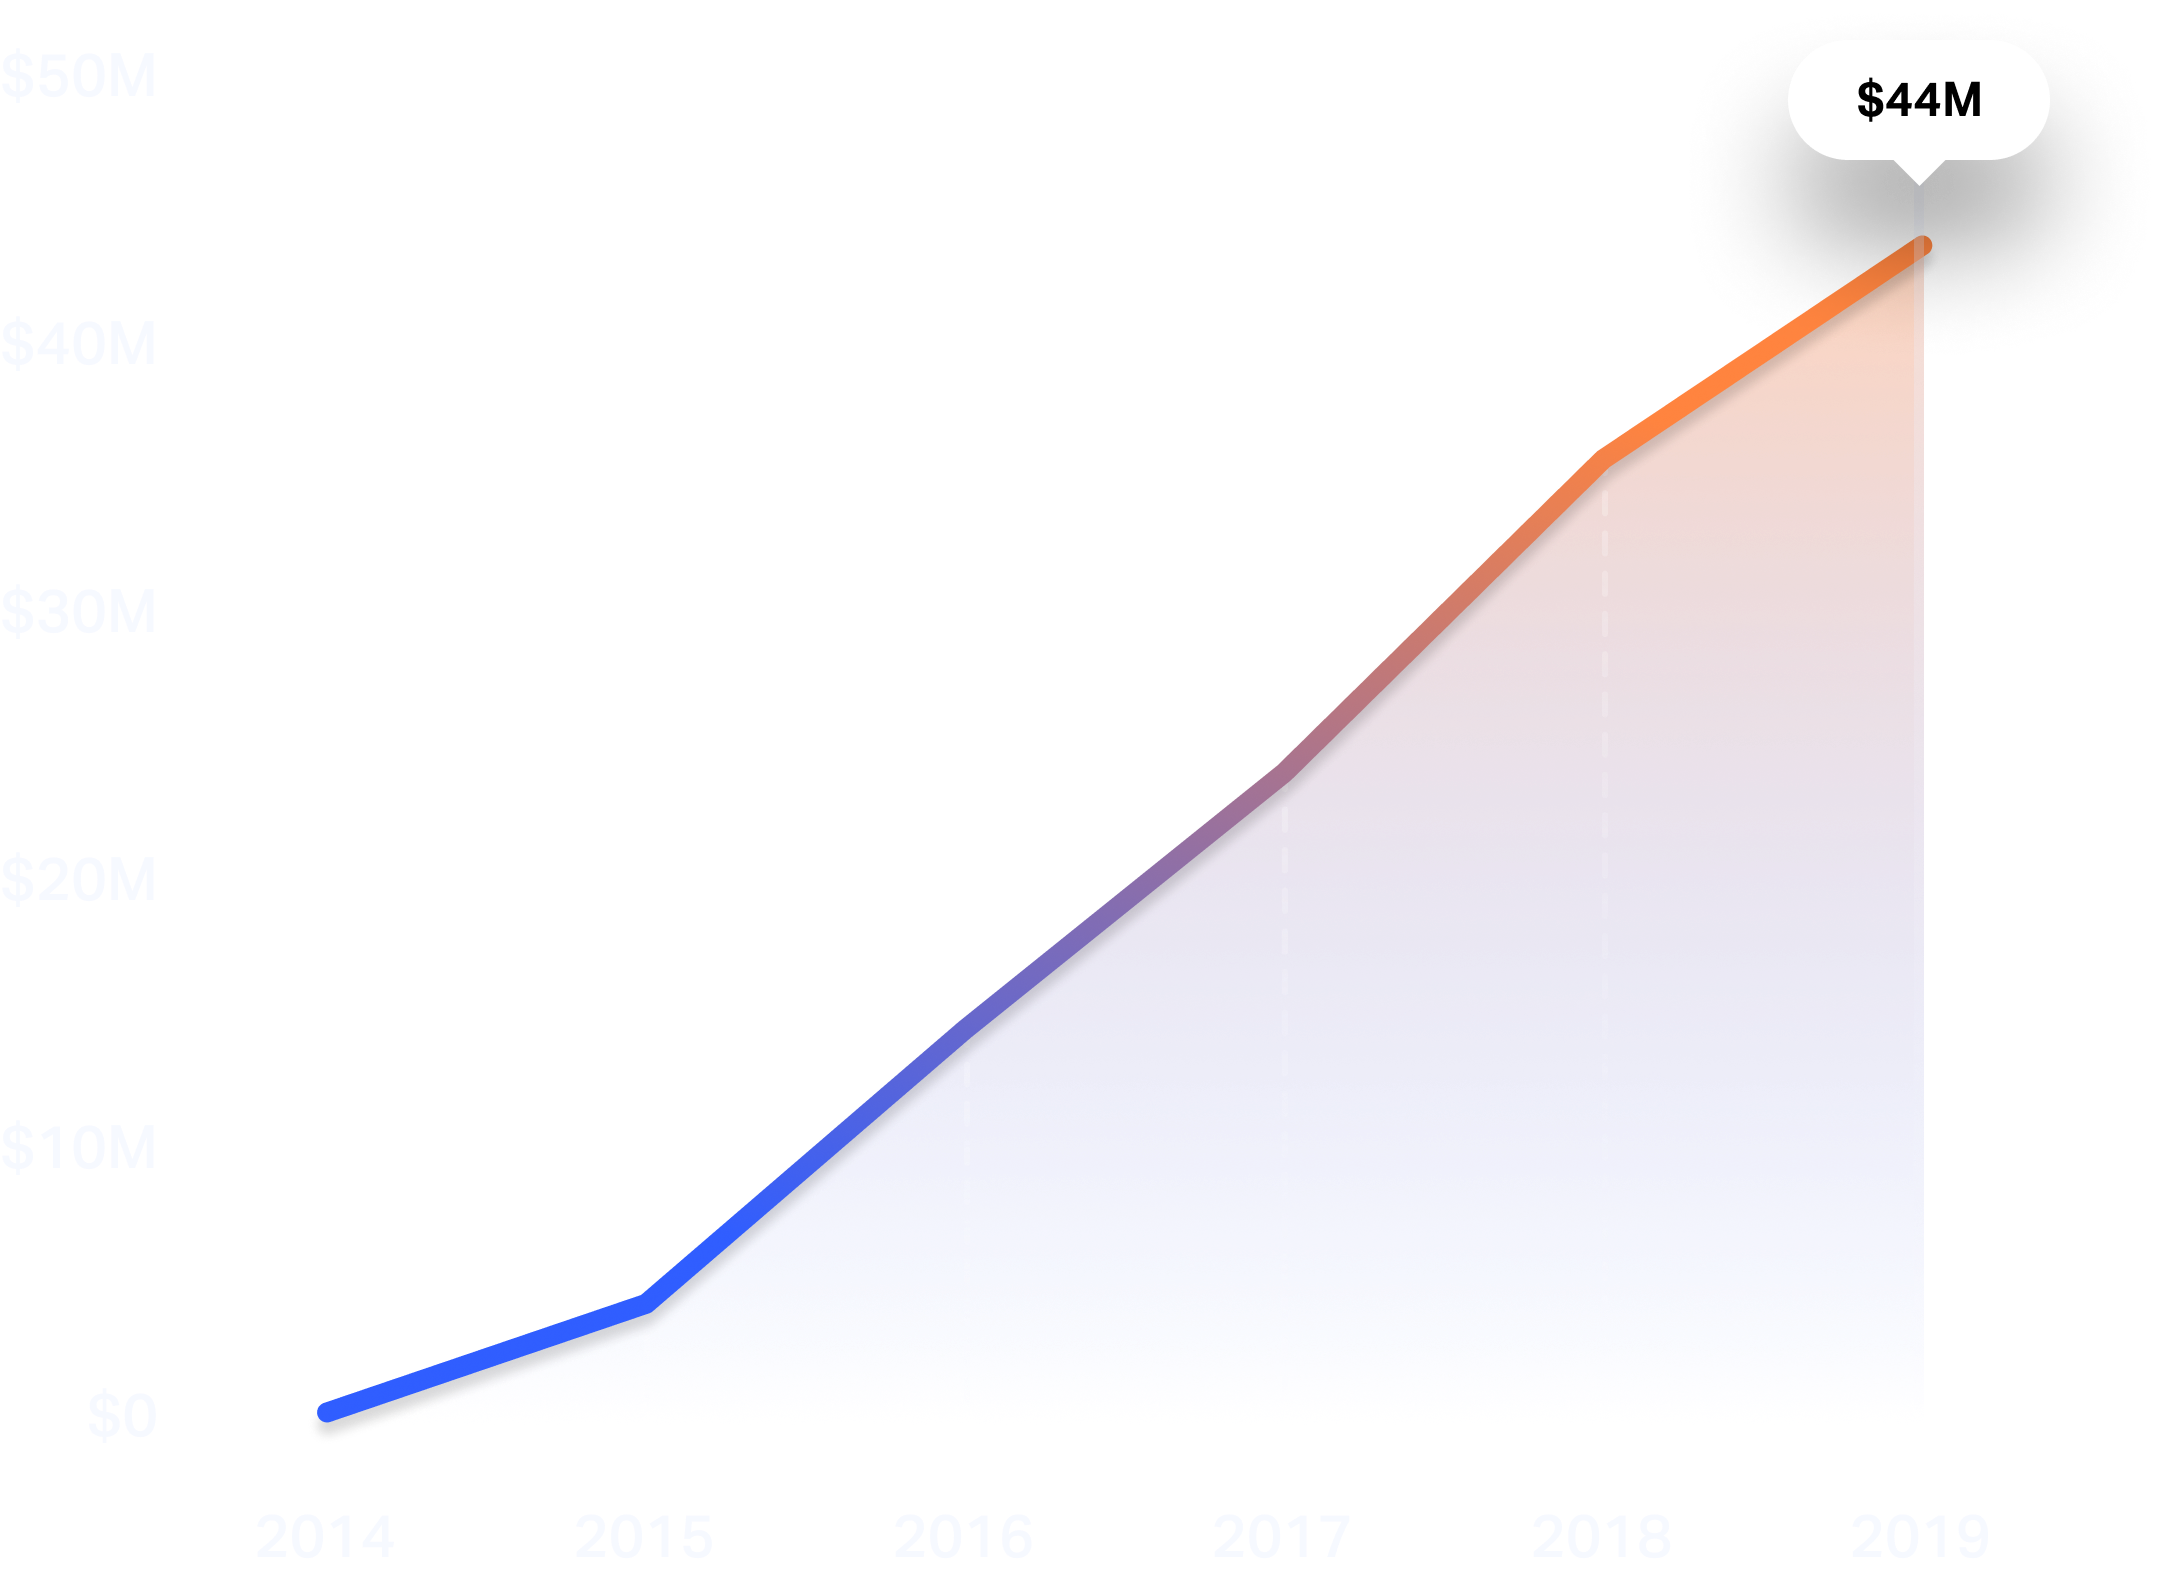 Graph showing Merchology's revenue growth from 2014 to 2019